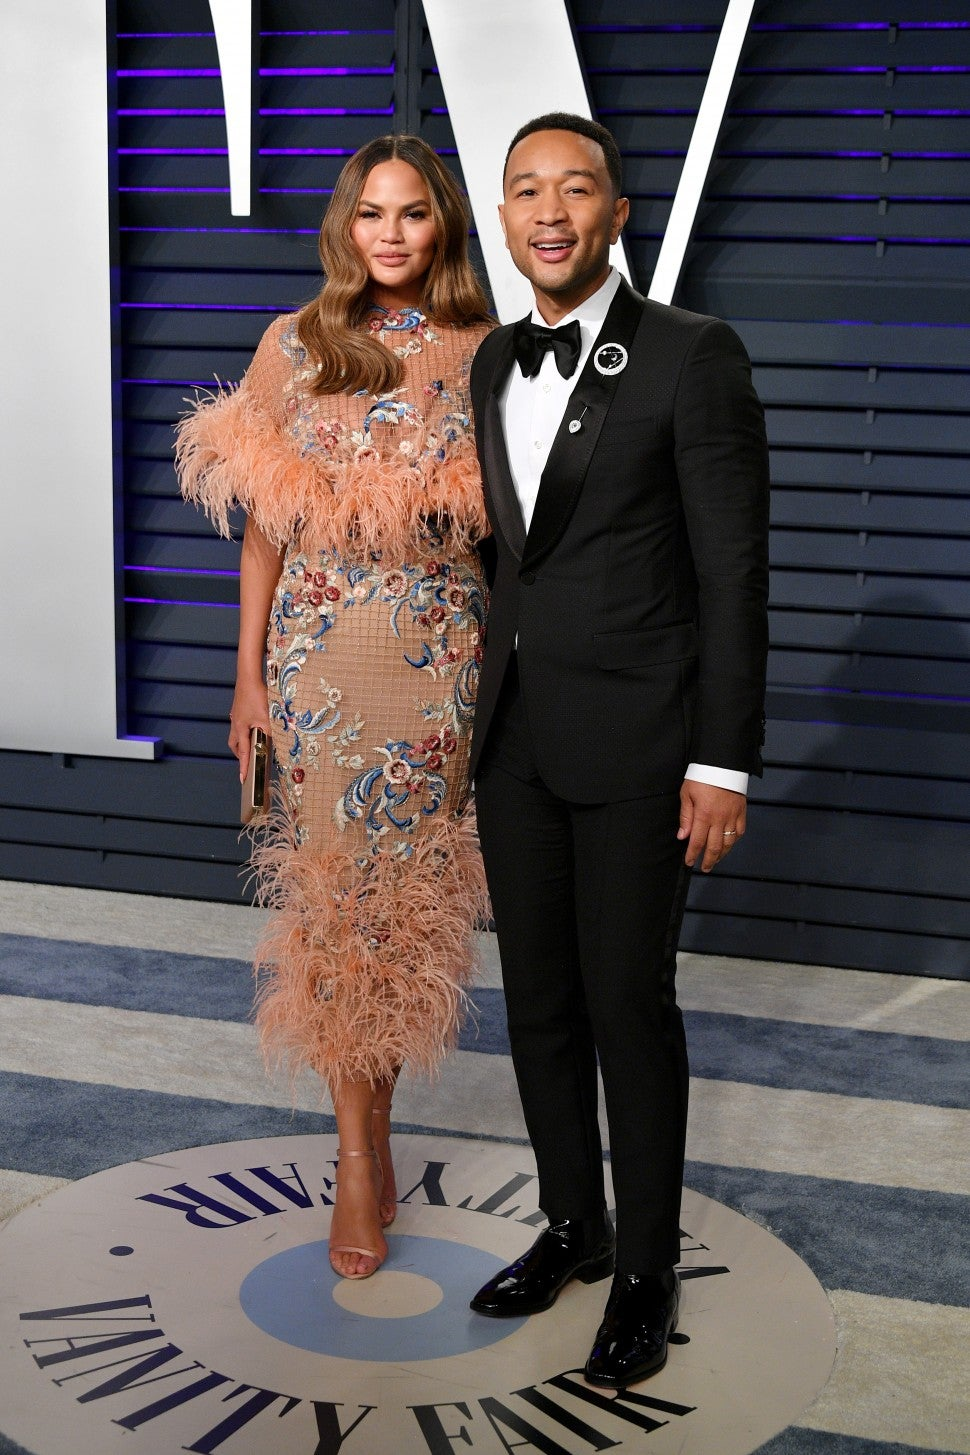 Chrissy Teigen and John Legend at vf party